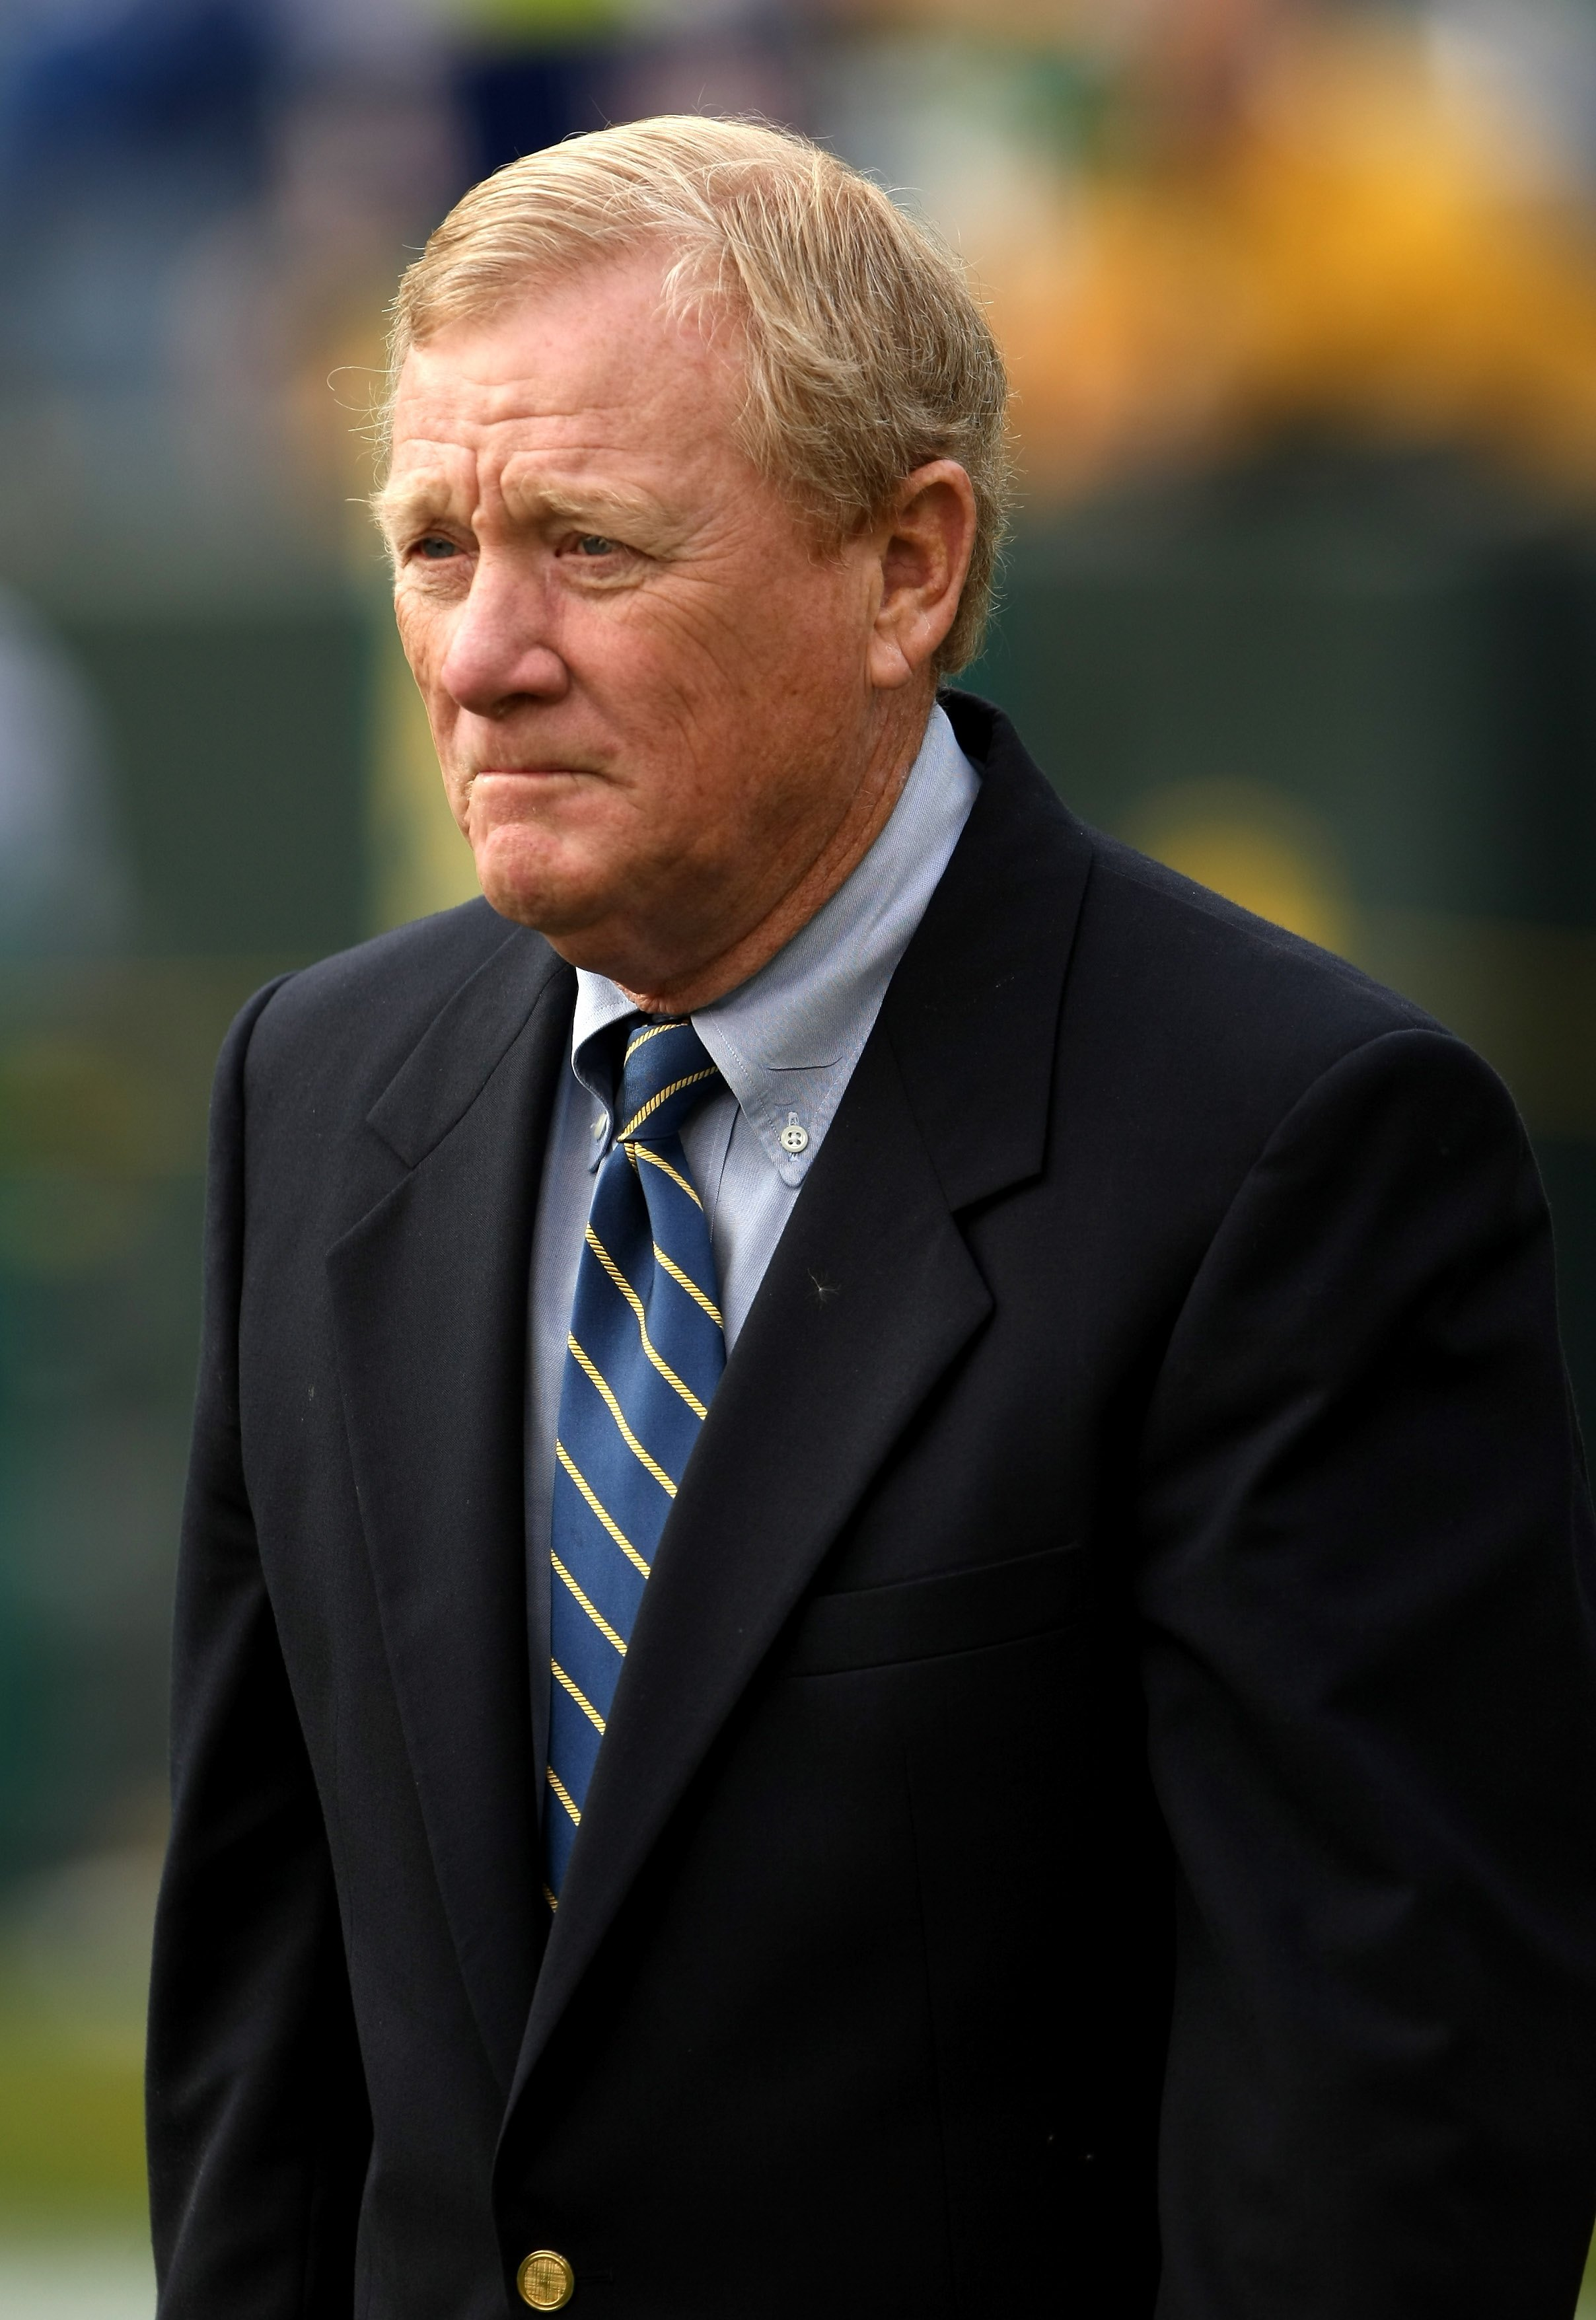 GREEN BAY, WI - OCTOBER 19:  Indianapolis Colts president Bill Polian walks on the field during warmups for the game with the Green Bay Packers on October 19, 2008 at Lambeau Field in Green Bay Wisconsin. The Packers won 34-14.   (Photo by Stephen Dunn/Ge